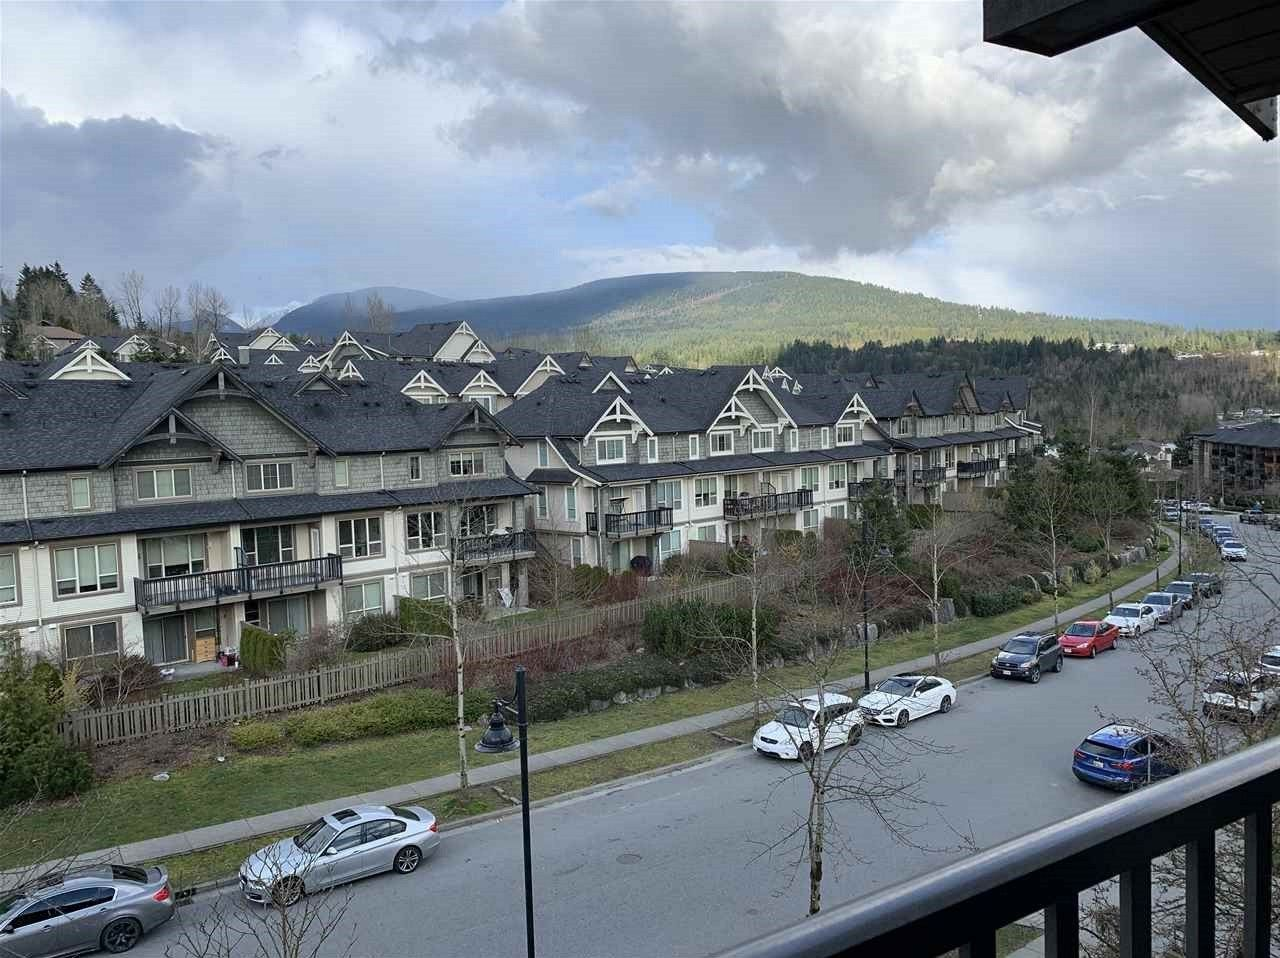 Main Photo: 502 3110 DAYANEE SPRINGS BOULEVARD in Coquitlam: Westwood Plateau Condo for sale : MLS®# R2550114